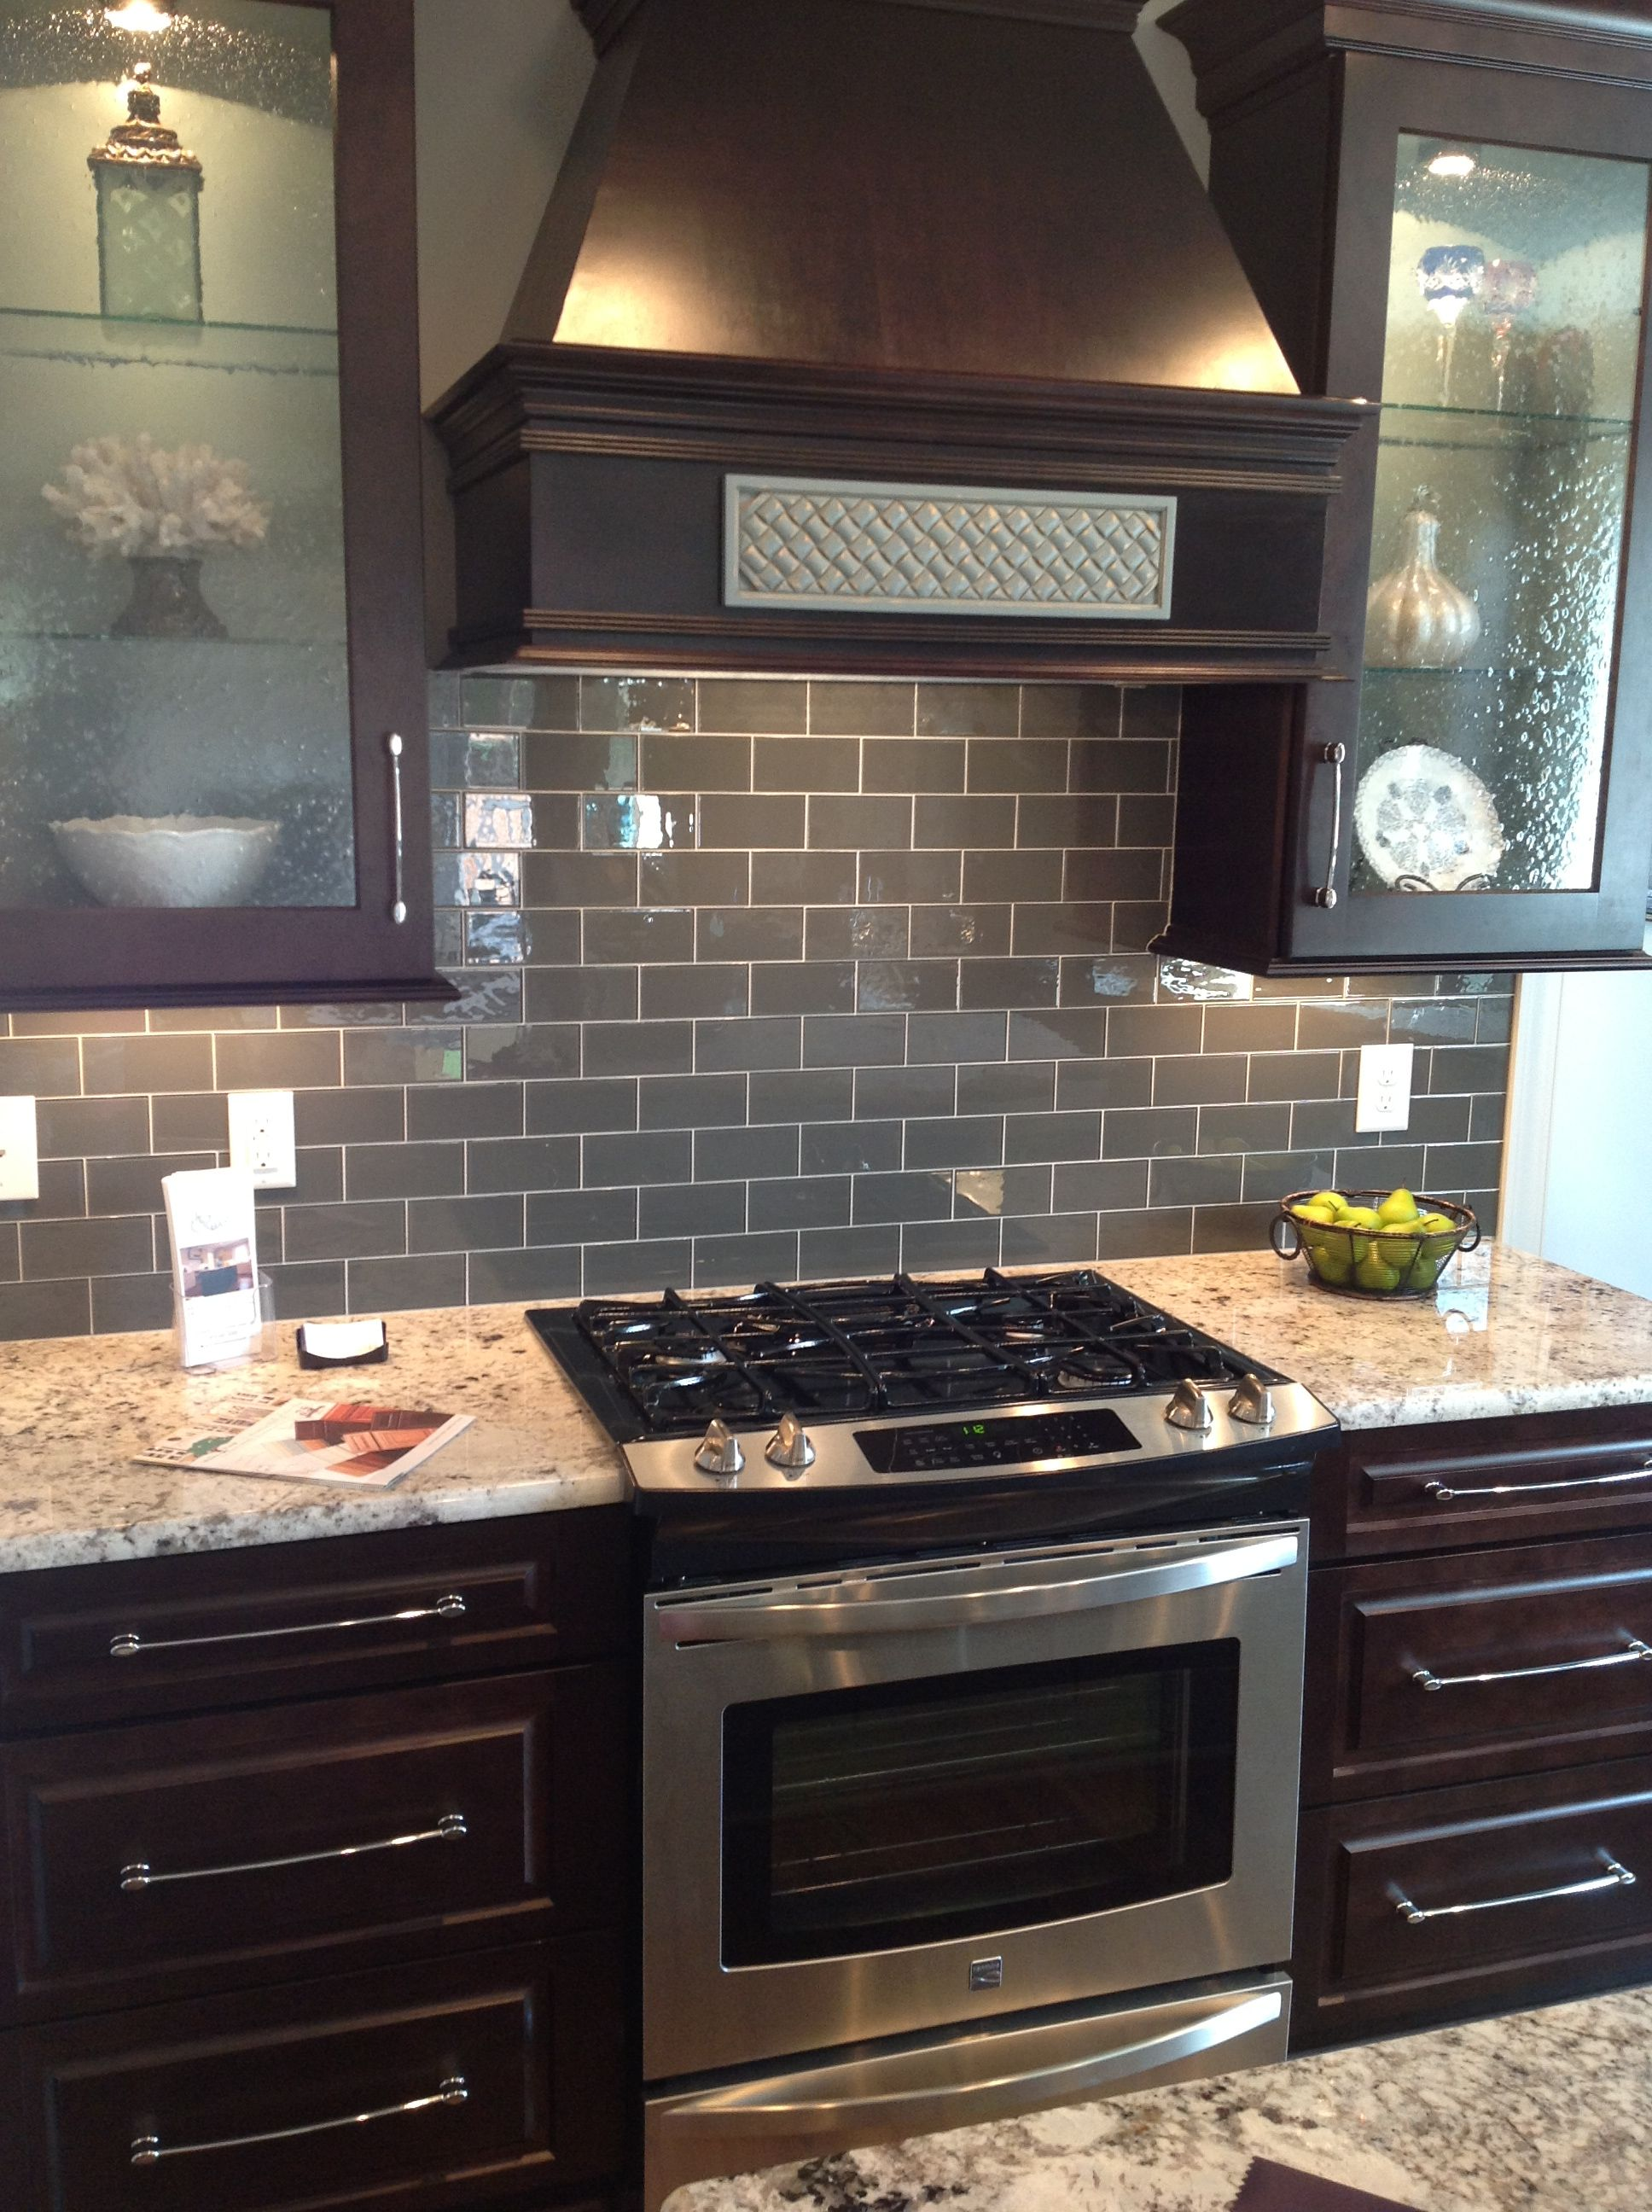 Gray Ceramic Tile Backsplash Ice Gray Glass Subway Tile Dark Brown Cabinets Subway